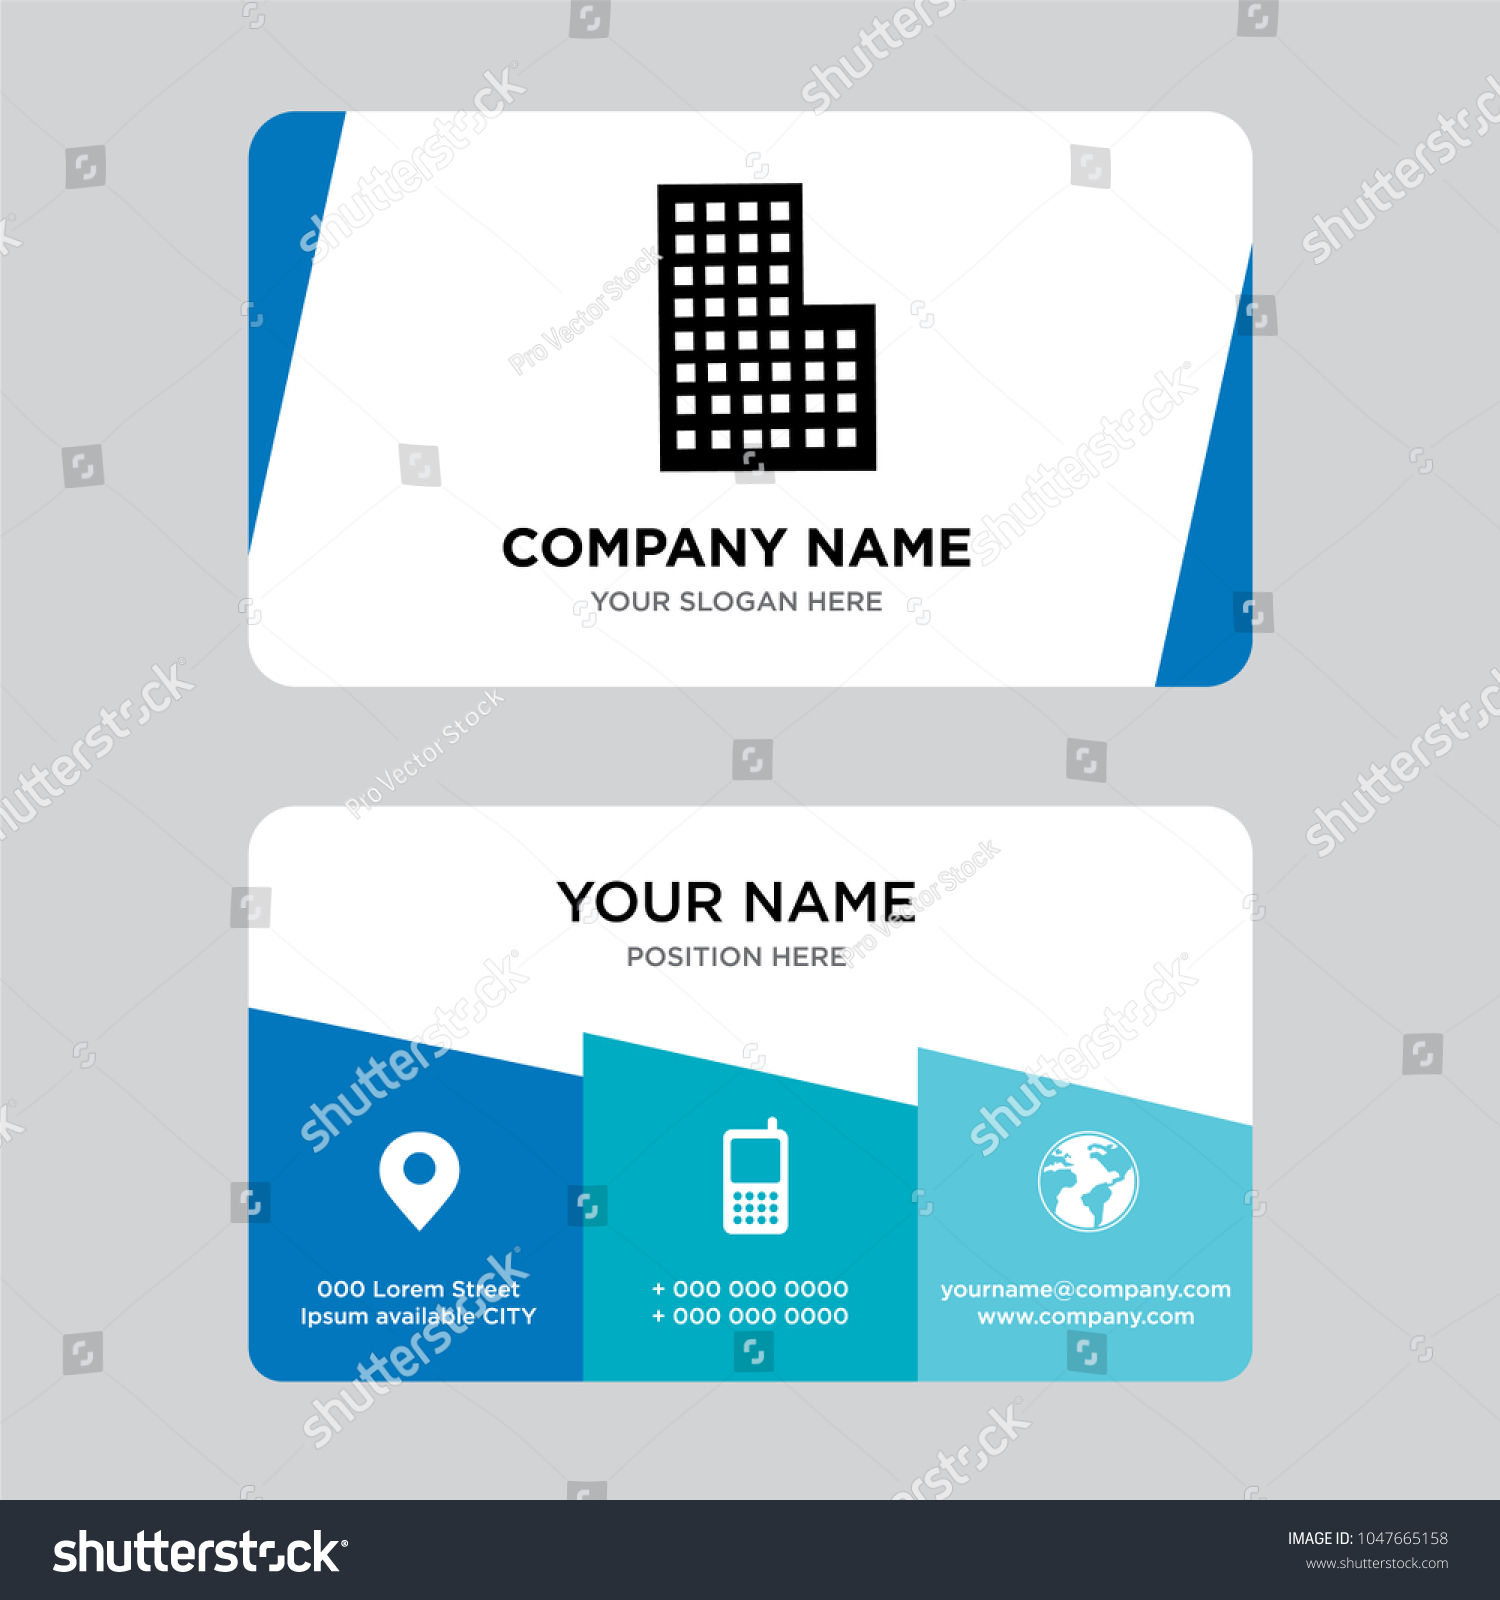 City Building Business Card Design Template Stock Vector 1047665158 ...